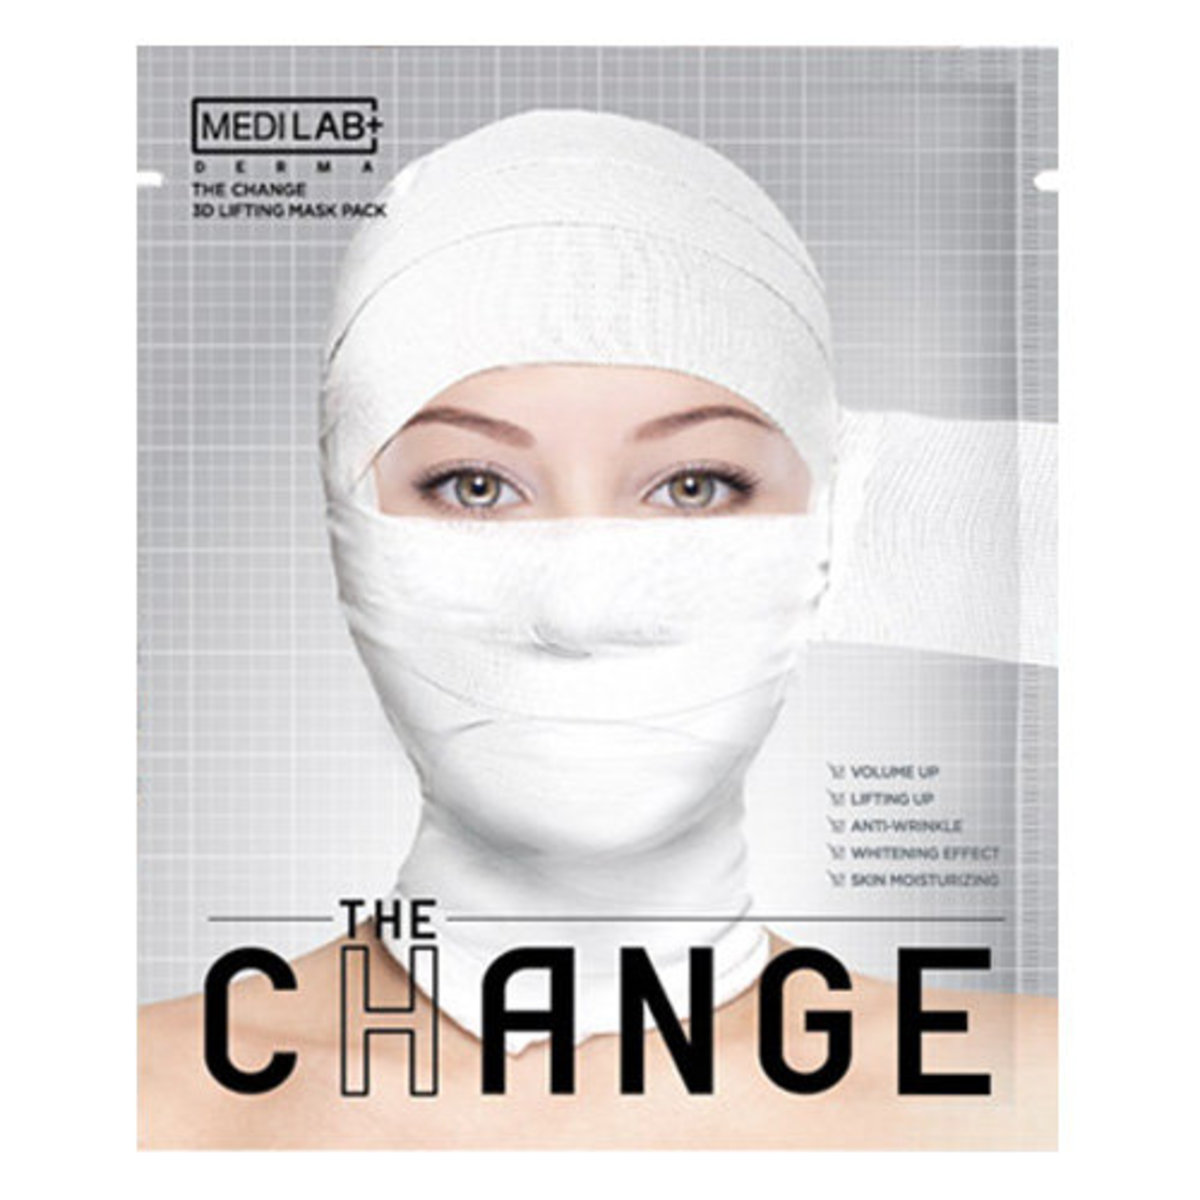 The Change 3D Lifting Mask Pack 7 Sheets